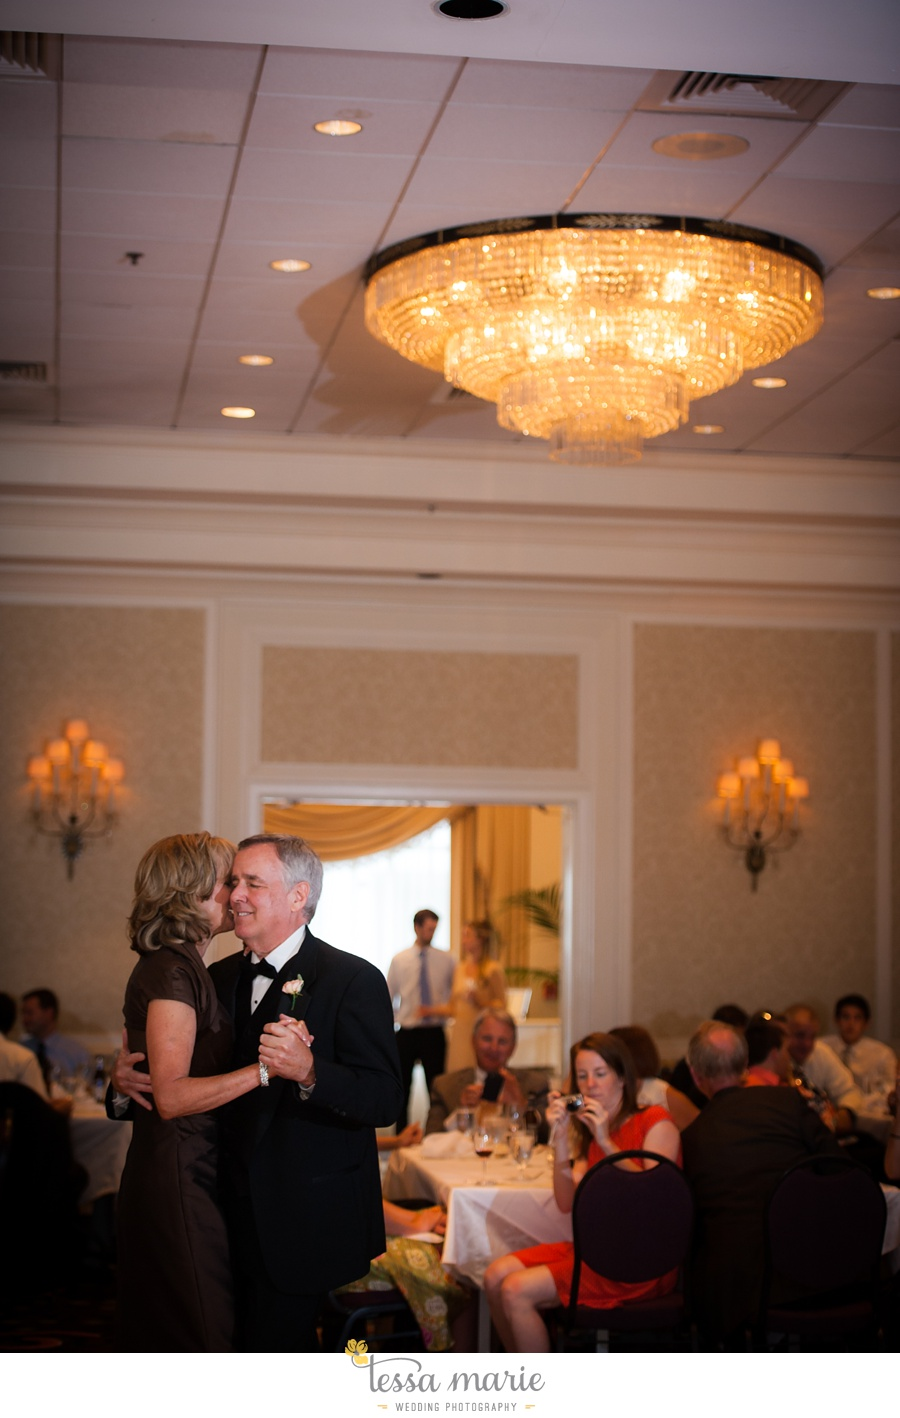 christ_the_king_wedding_pictures_Villa_christina_wedding_tessa_marie_weddings_0125